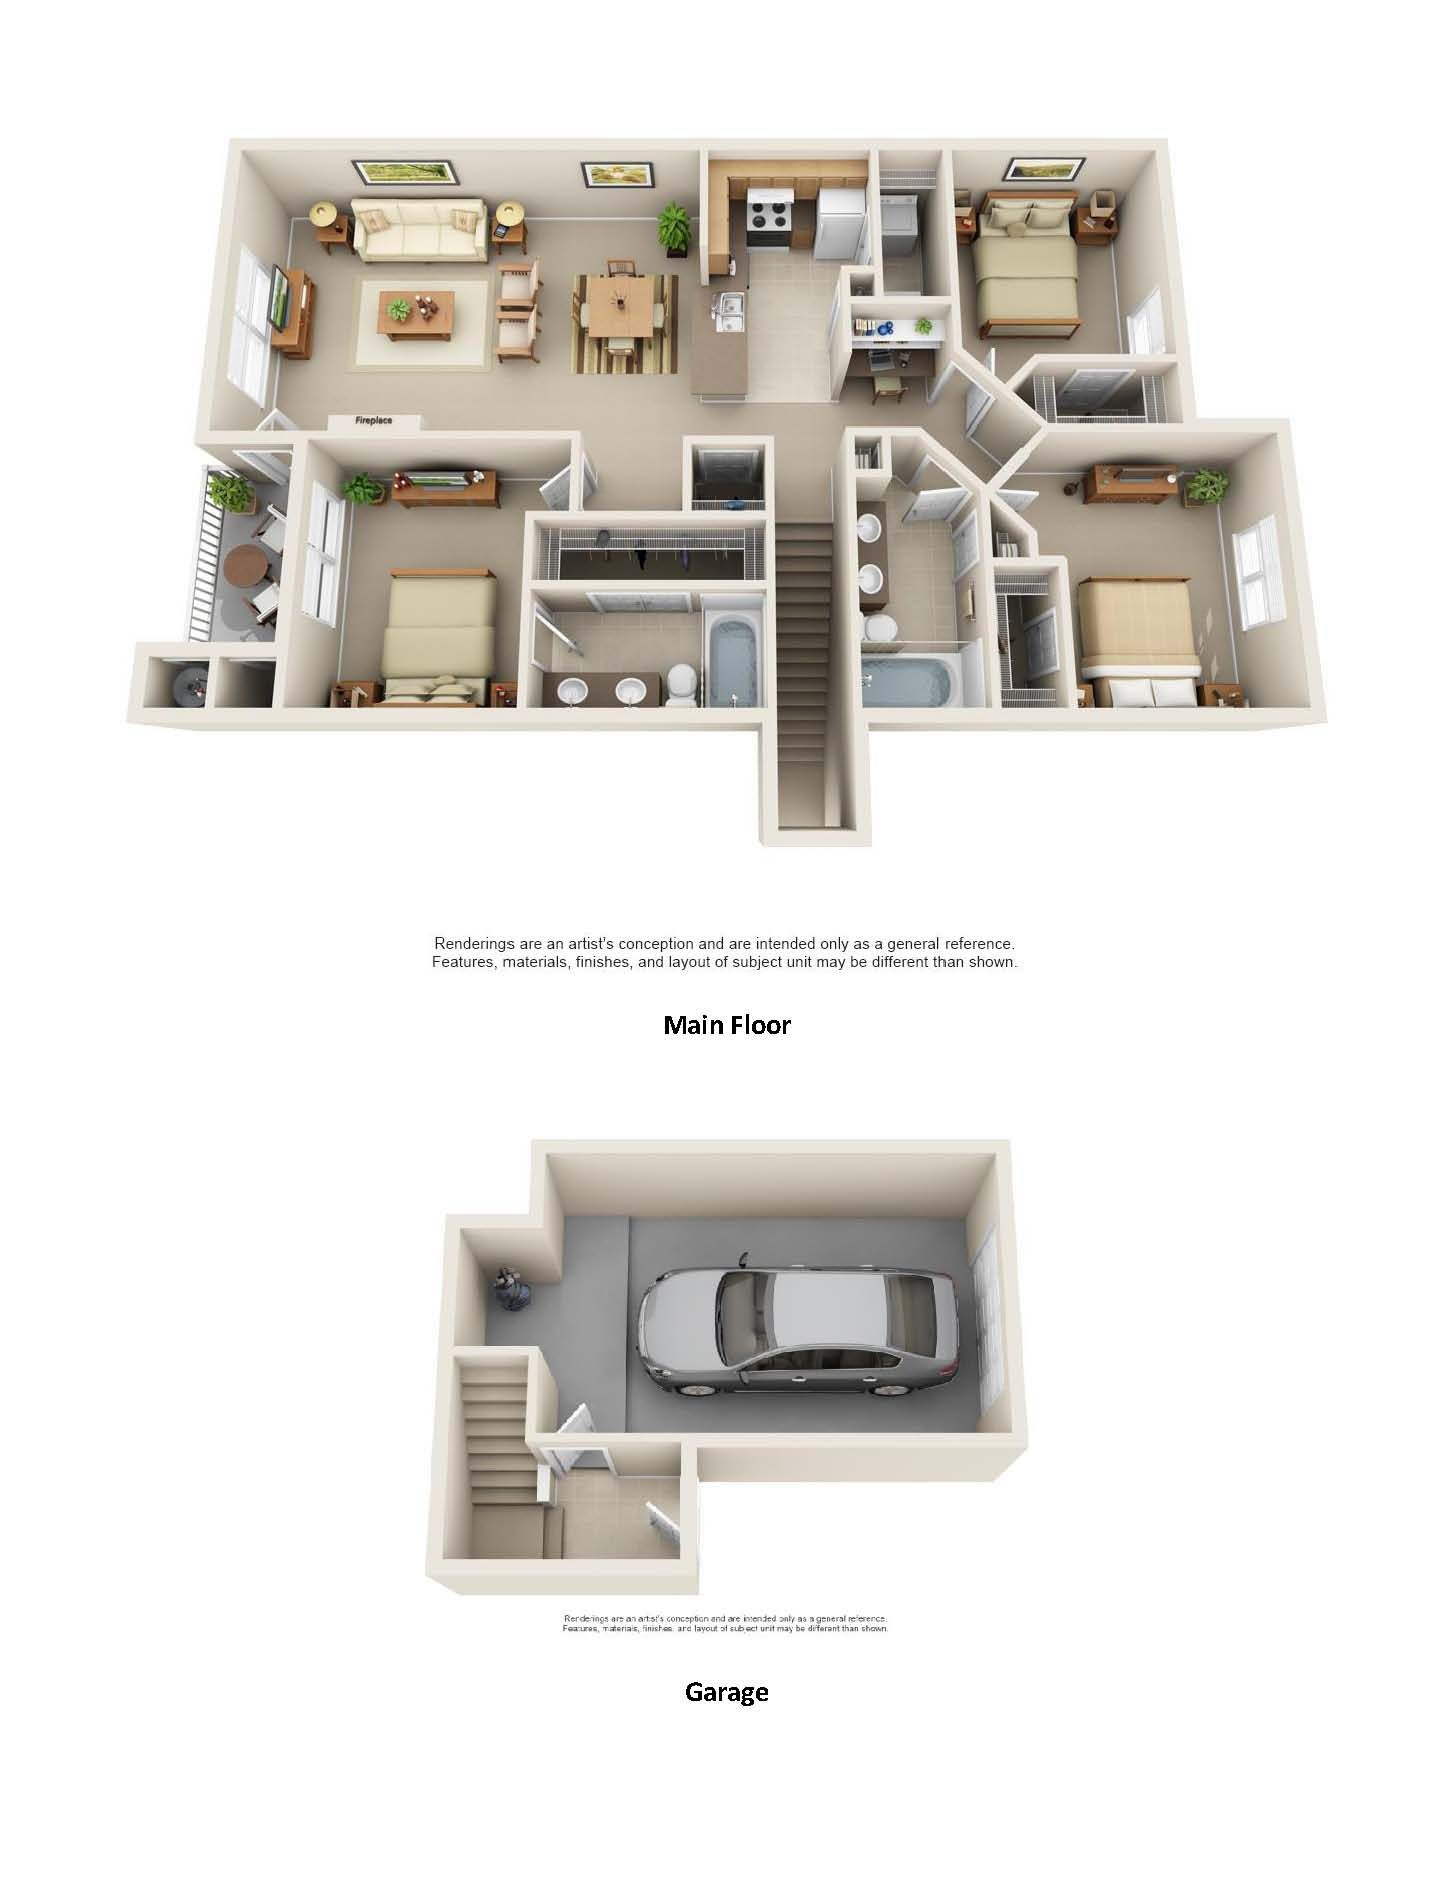 Luxury Two Three Bedroom Apartments In Florence Ky Florence Kentucky Apartment Steadfast Apartment Layout Apartment Plans Bedroom Floor Plans